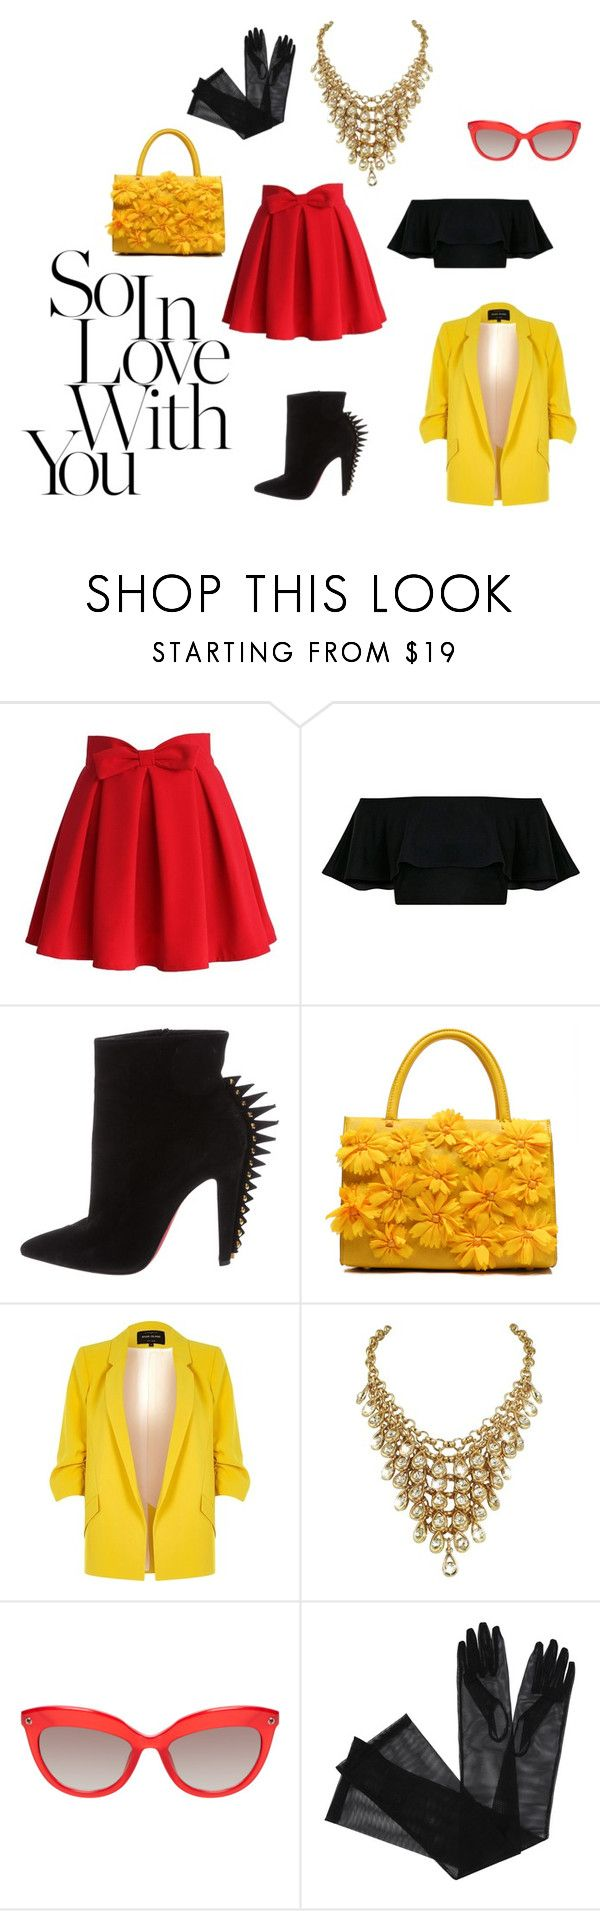 """""""So in Love with you"""" by nerdygets on Polyvore featuring moda, Chicwish, Christian Louboutin, River Island i Gucci"""